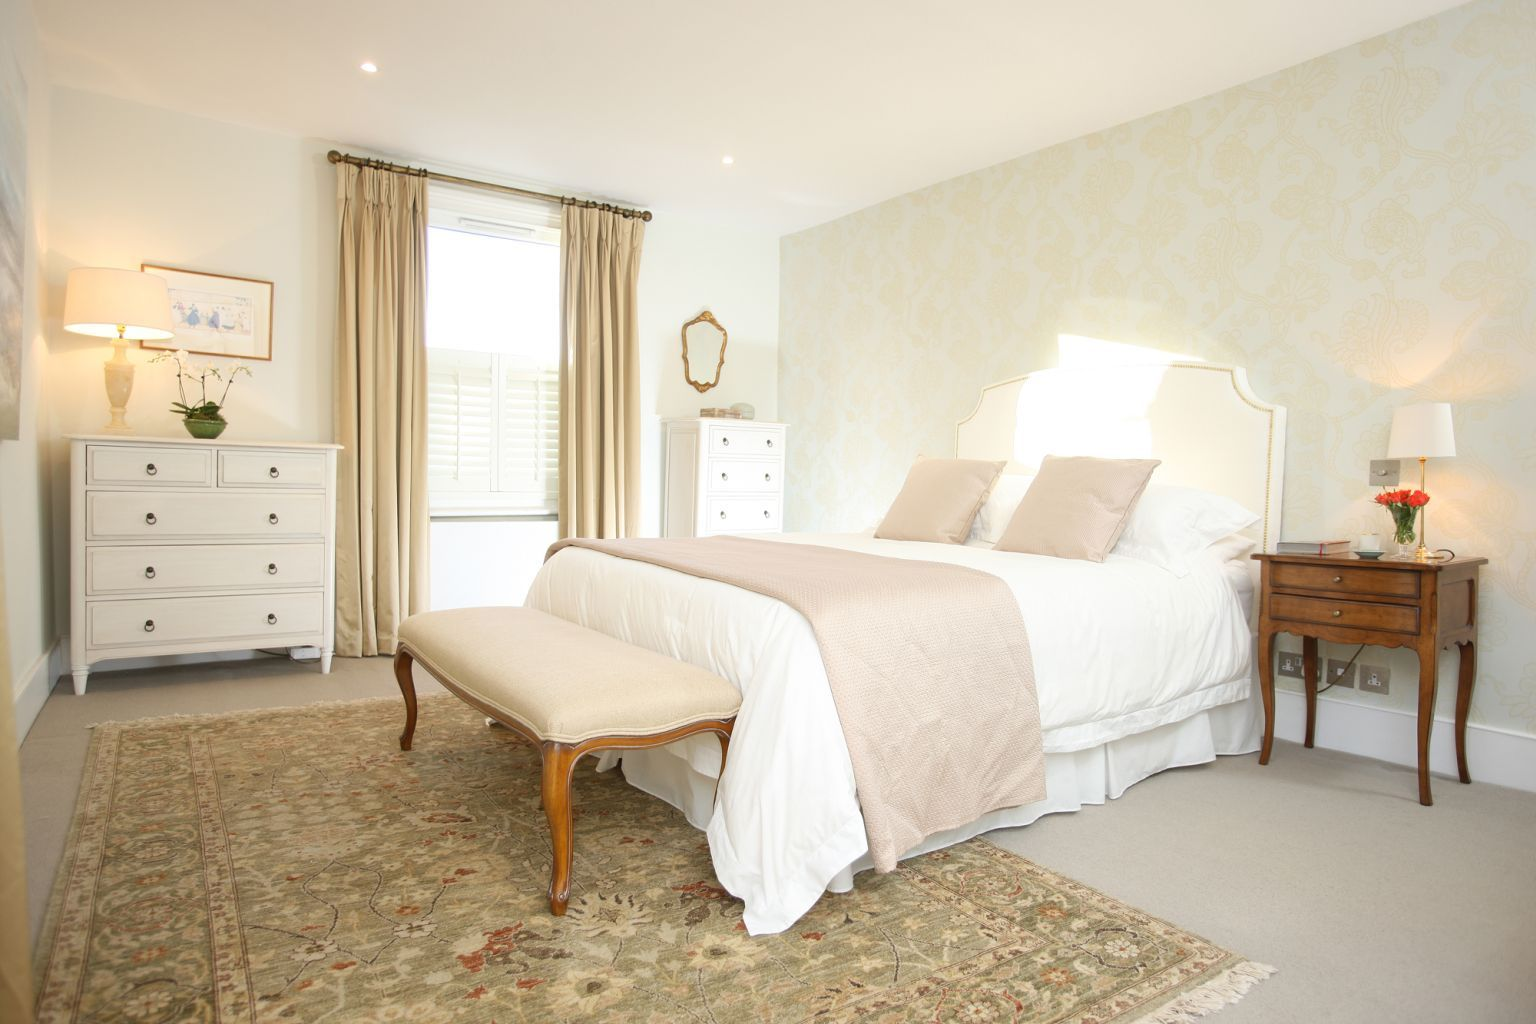 Furniture Bedroom Clapham - Oficina Inglesa Furniture Bedroom Clapham - Oficina Inglesa